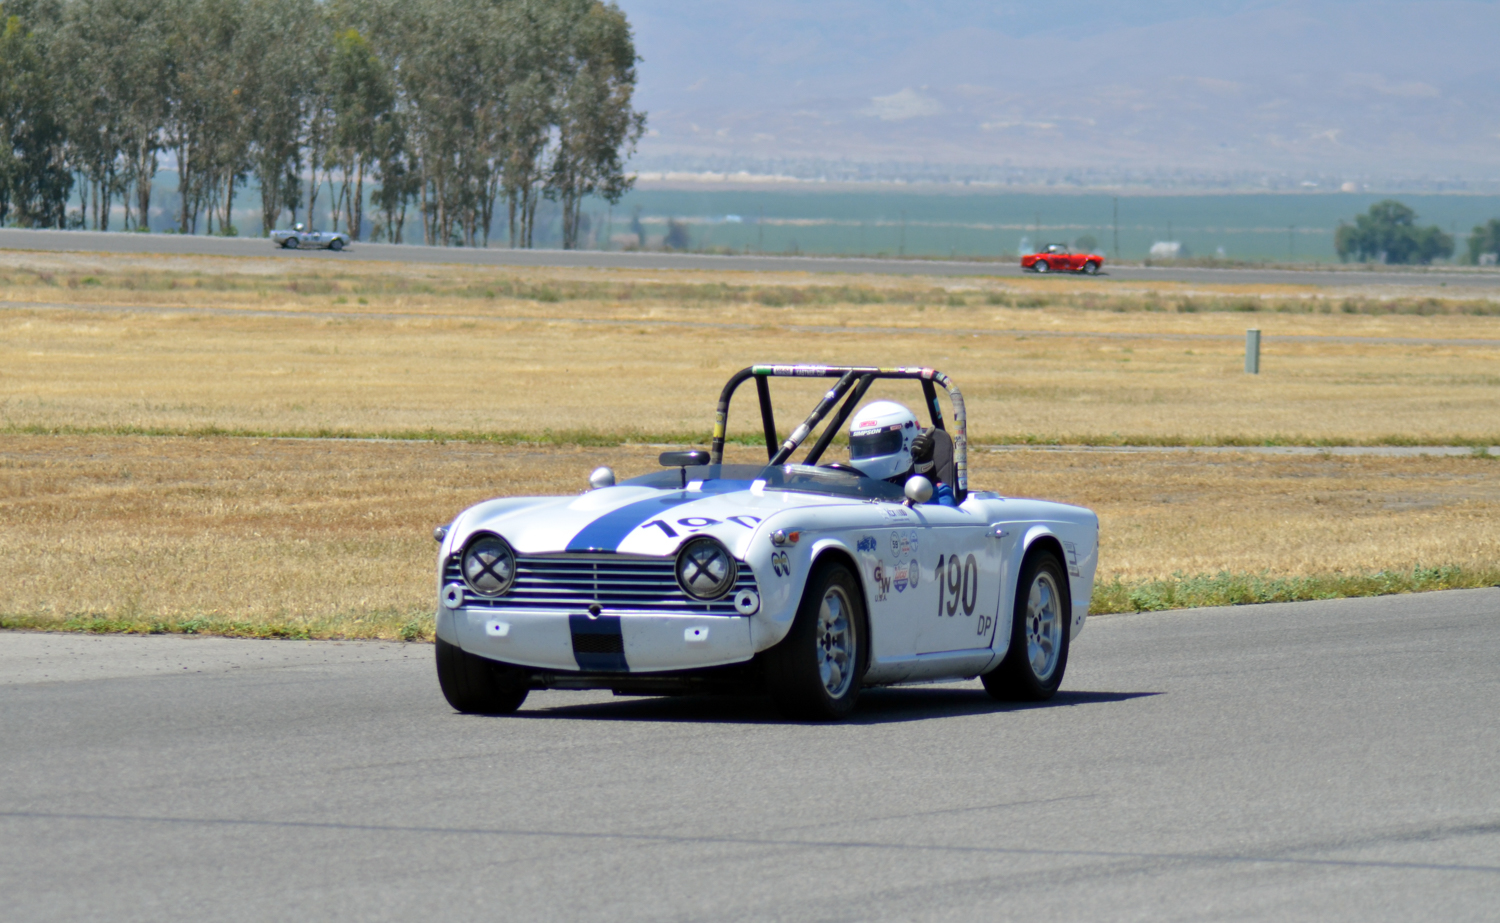 #190 Paul Smock, 1966 TR4A, Best Lap: 2:19.775